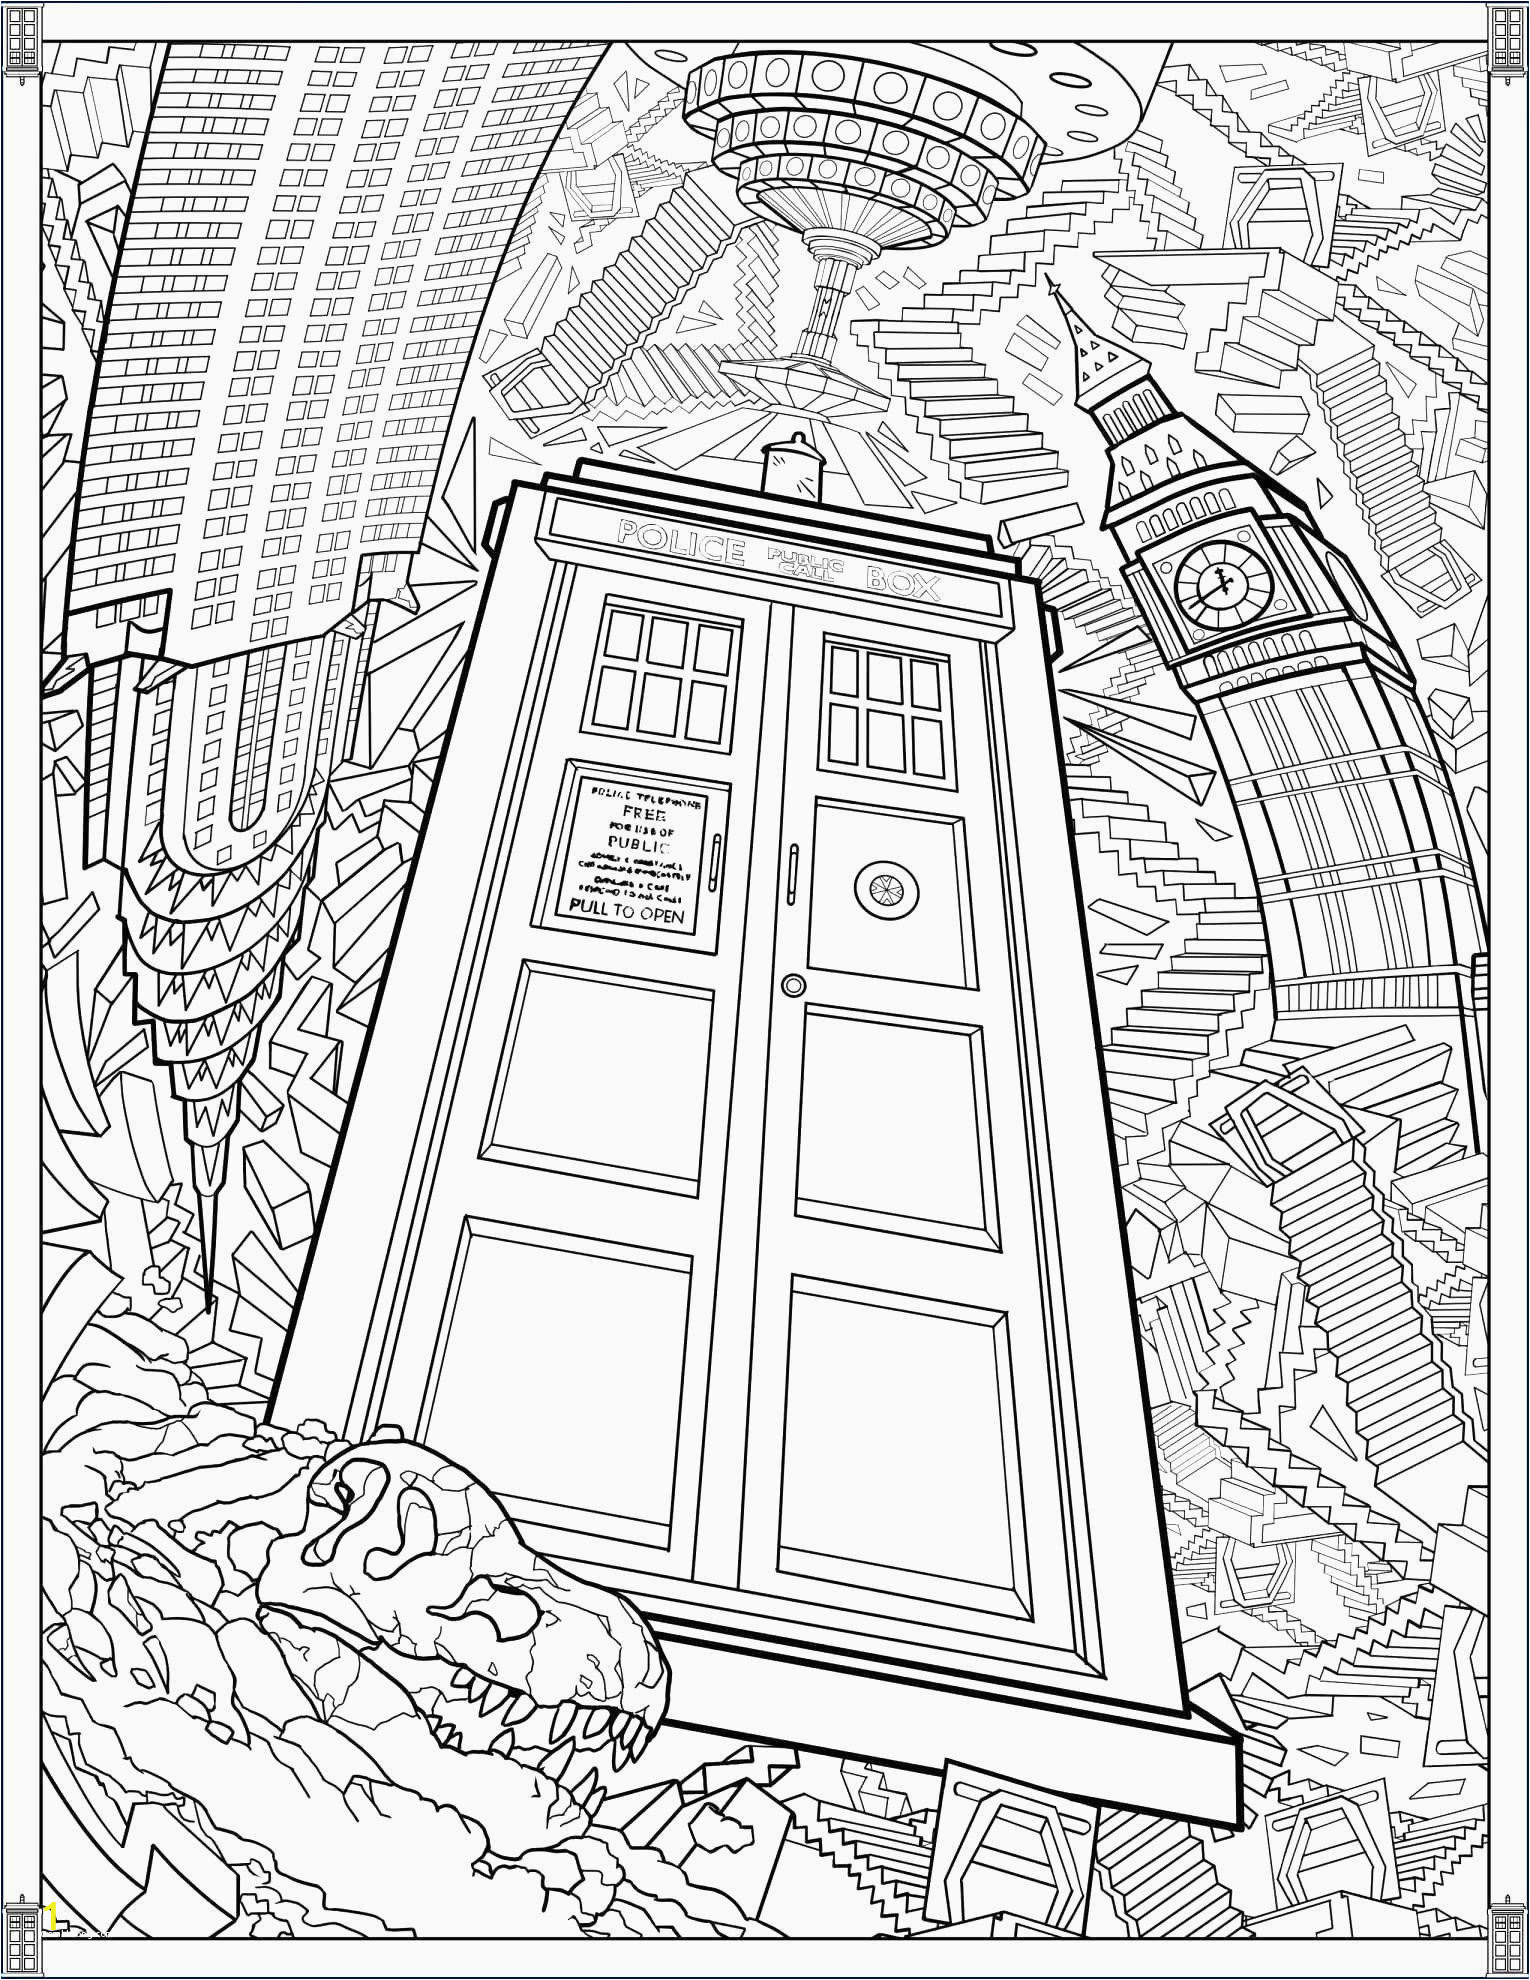 coloring pages for middle school students luxury coloring pages coloring multiplicationng worksheets 3rd of coloring pages for middle school students